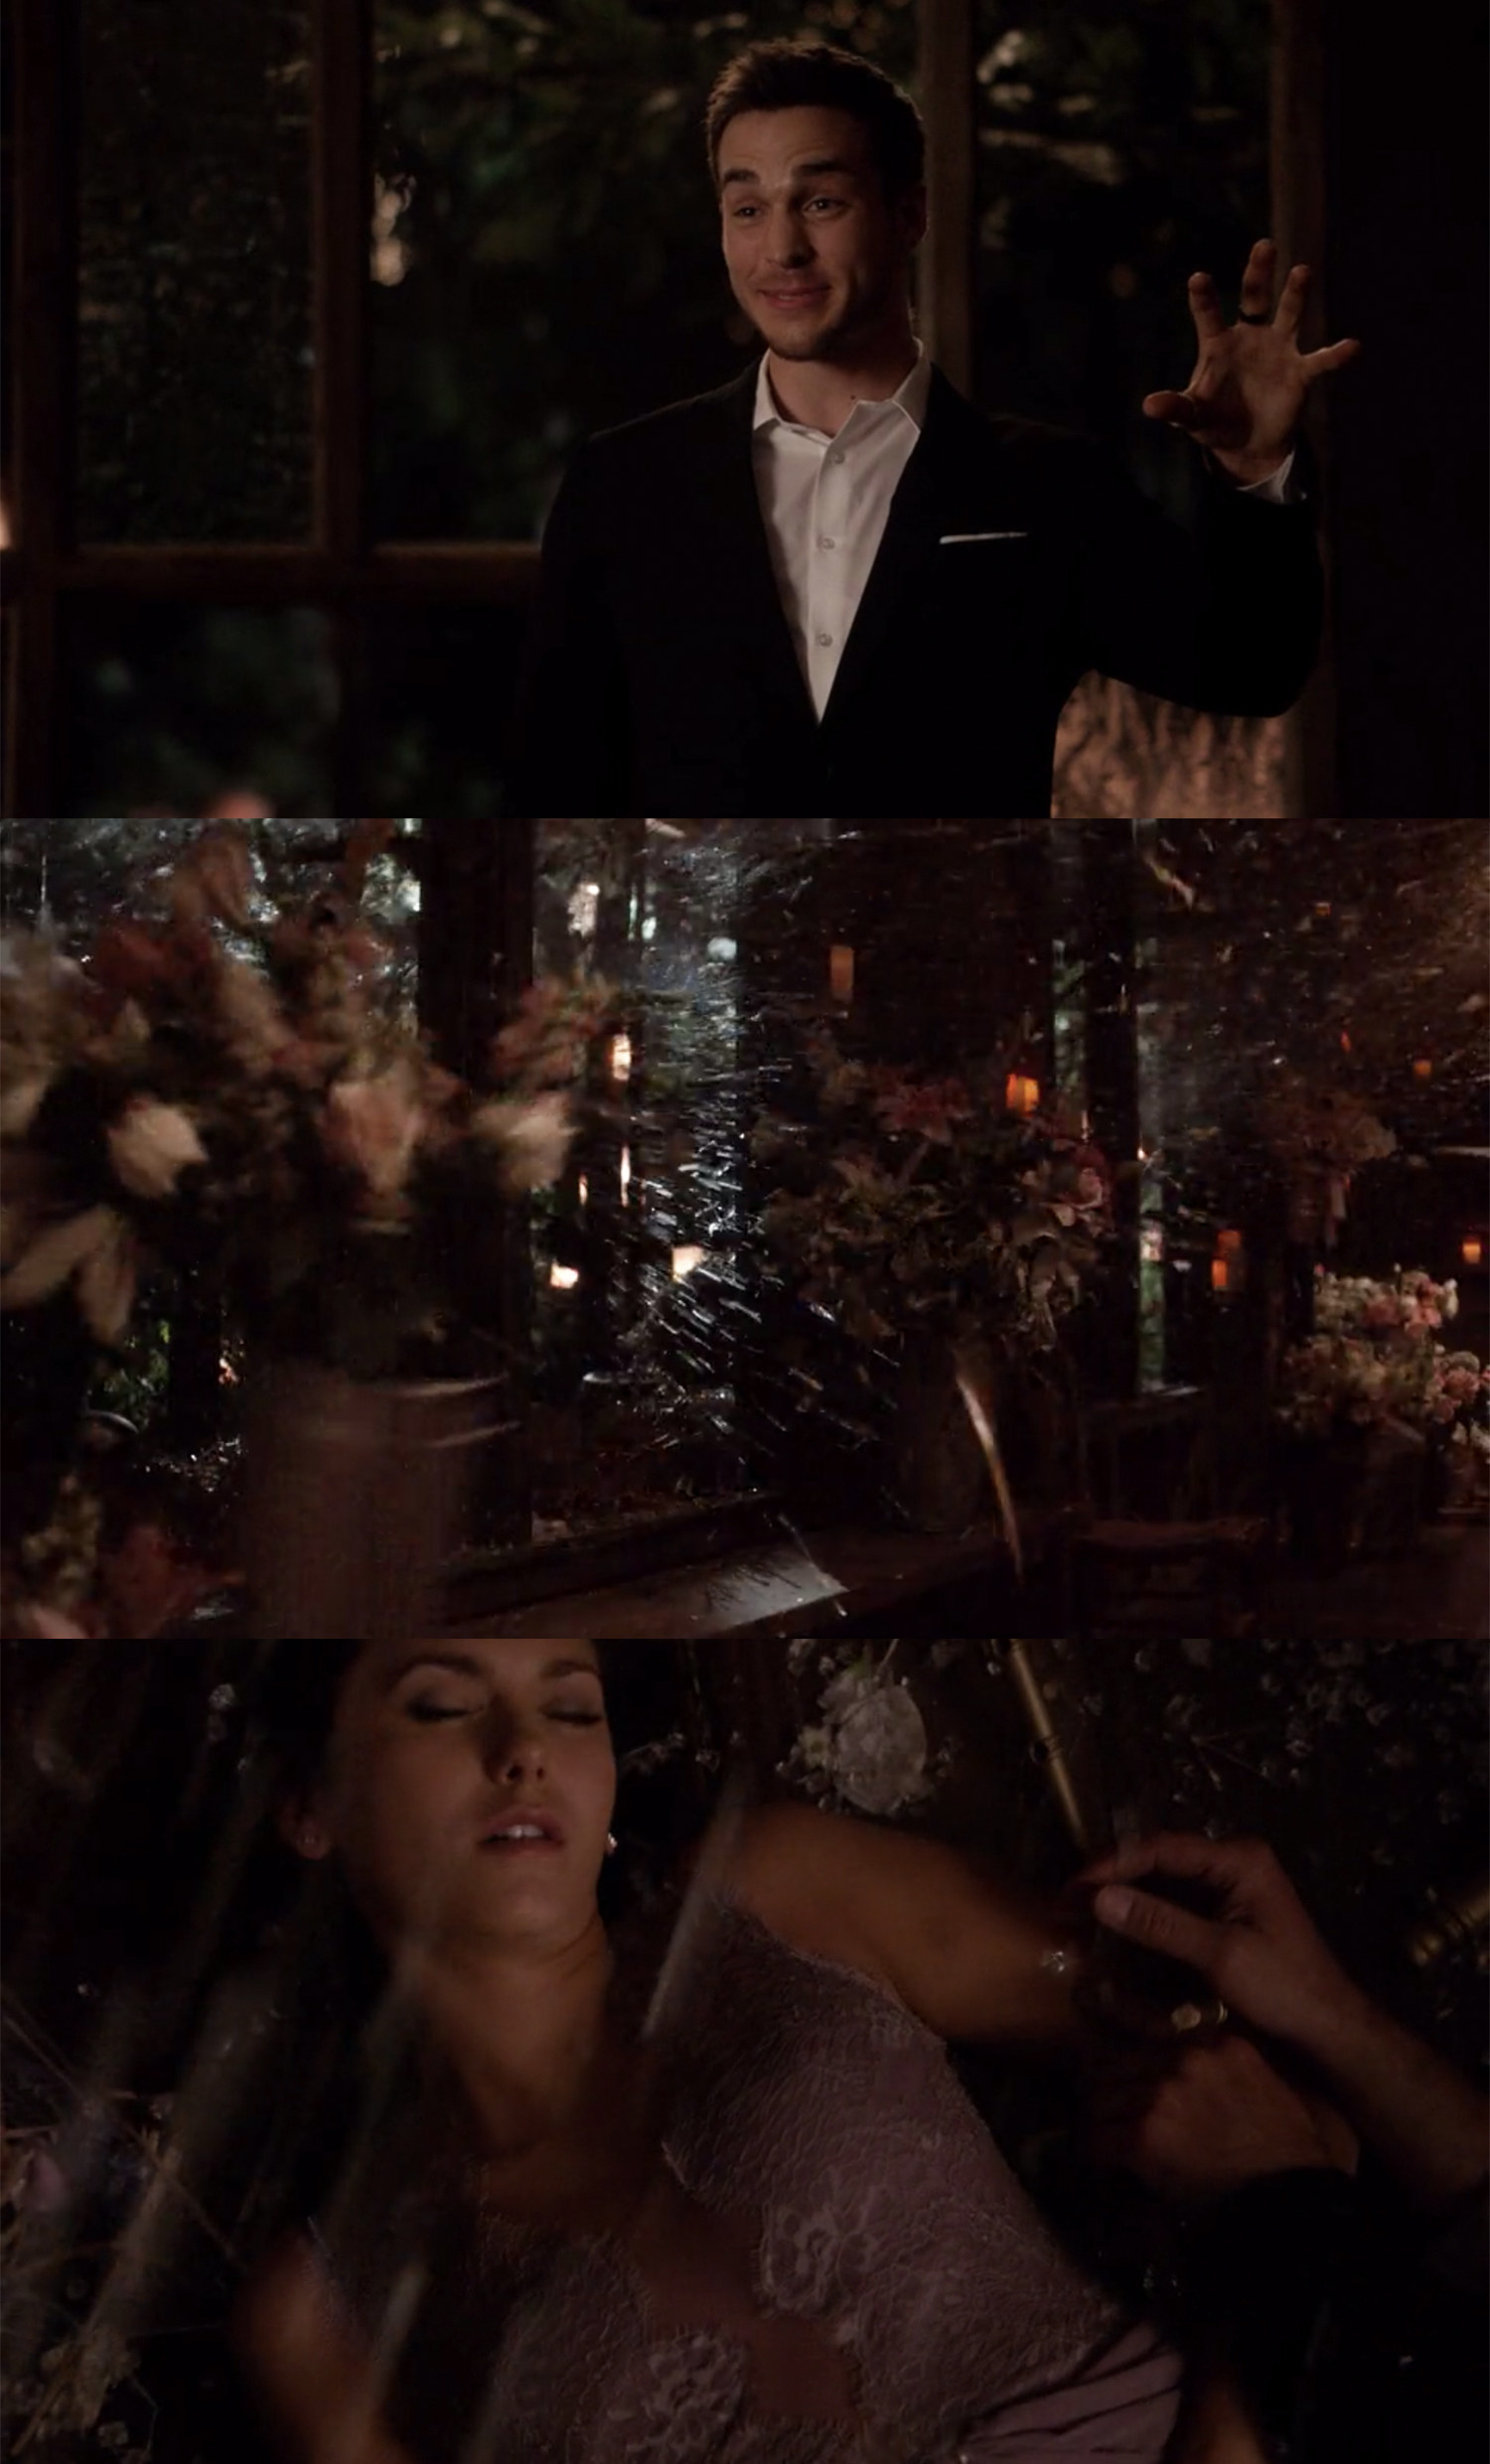 Kai magically shatters the windows, and the falling glass shard knock Elena unconscious